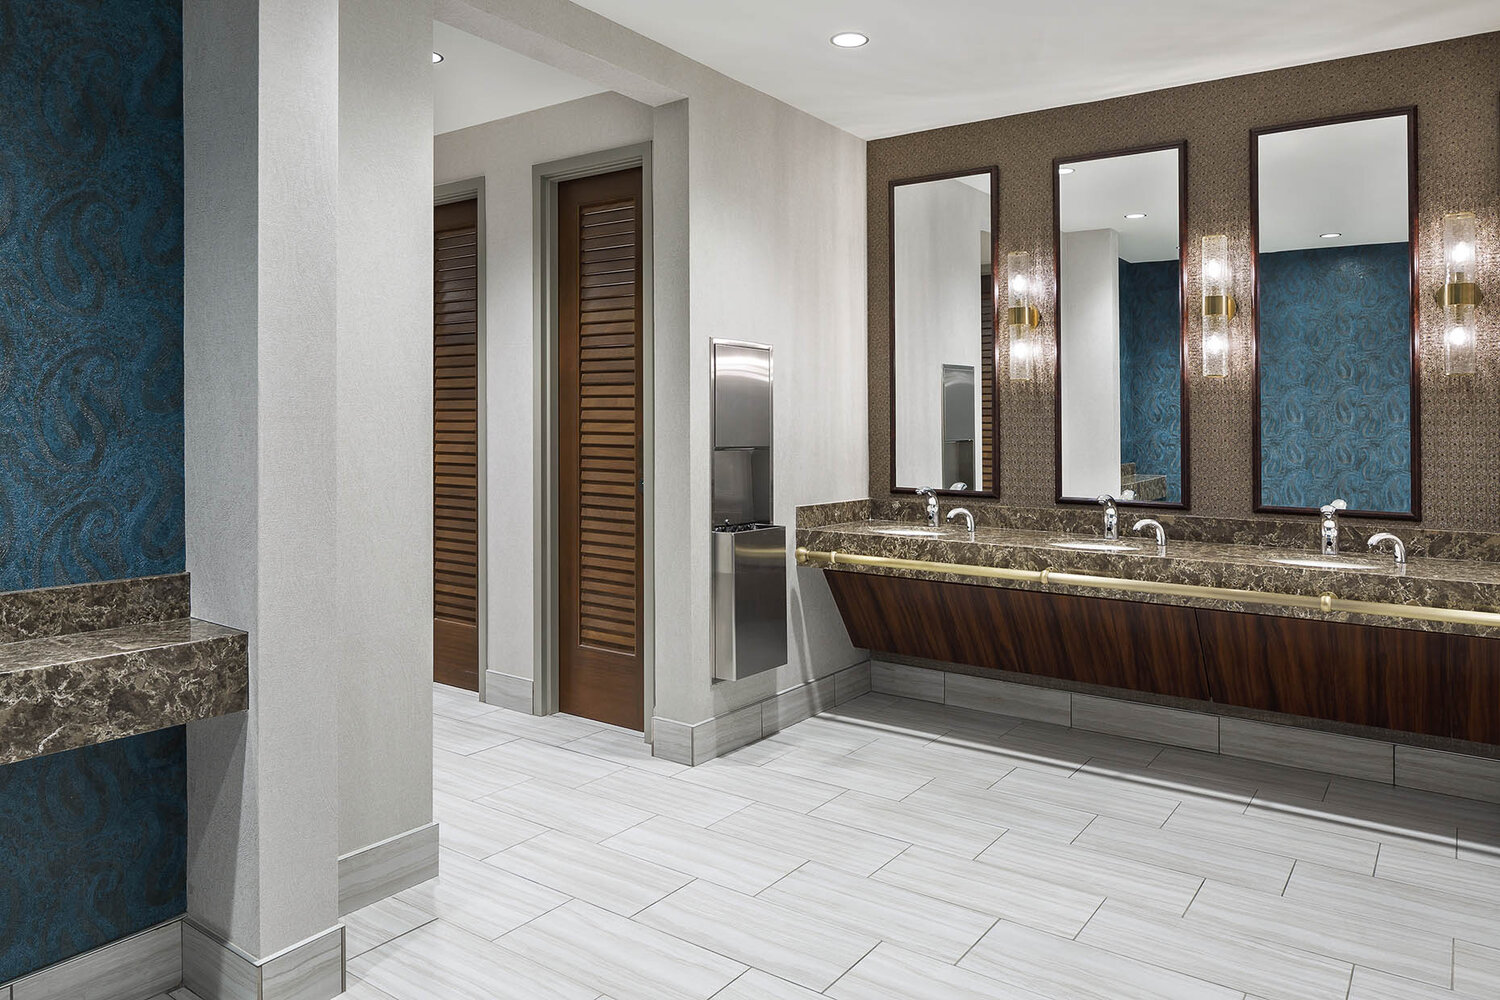 44__JacksonHealthcare_2019_MainBuilding_CommonArea_WomensRestroom_01_webuse.jpg